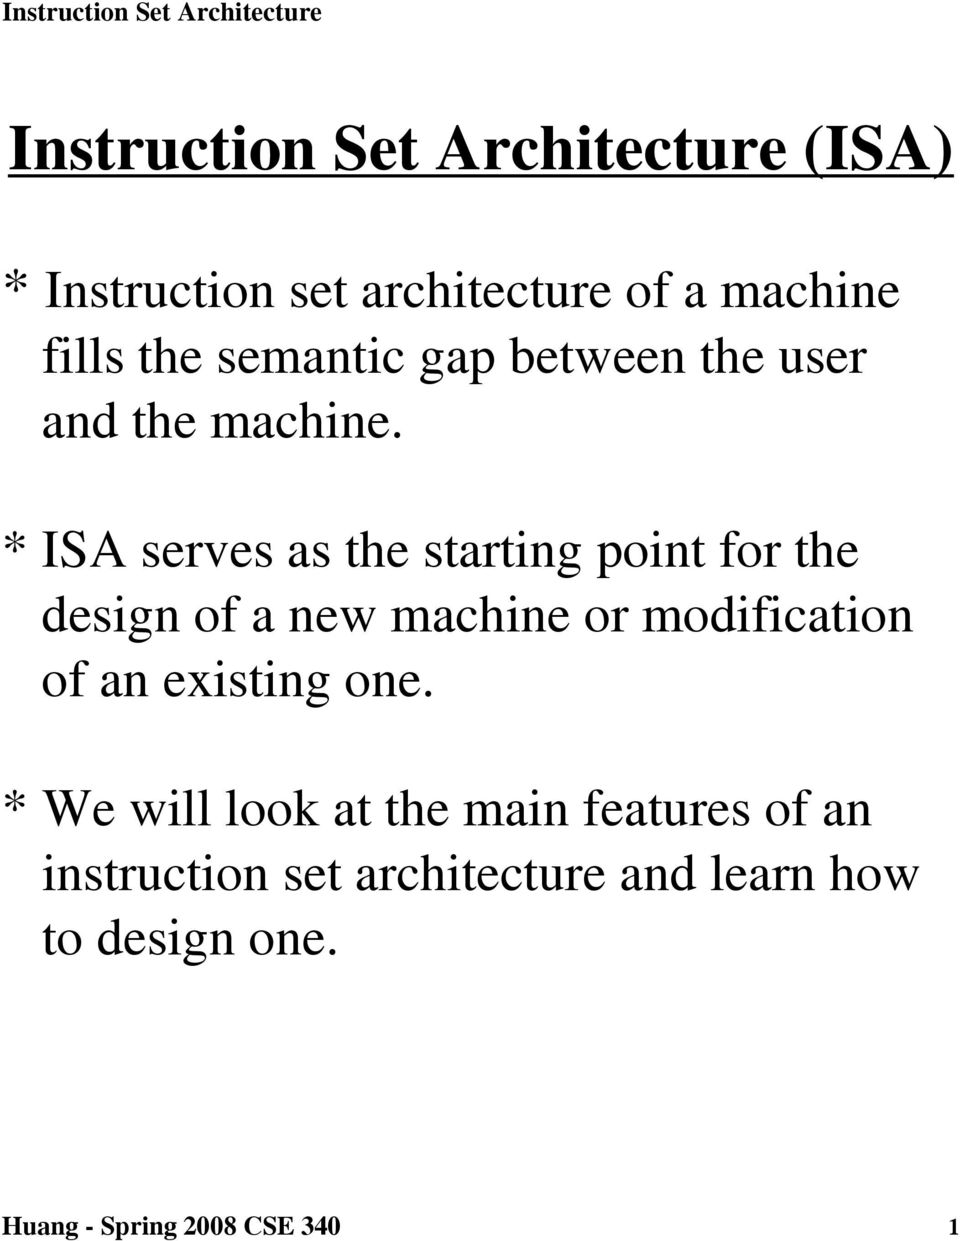 * ISA serves as the starting point for the design of a new machine or modification of an